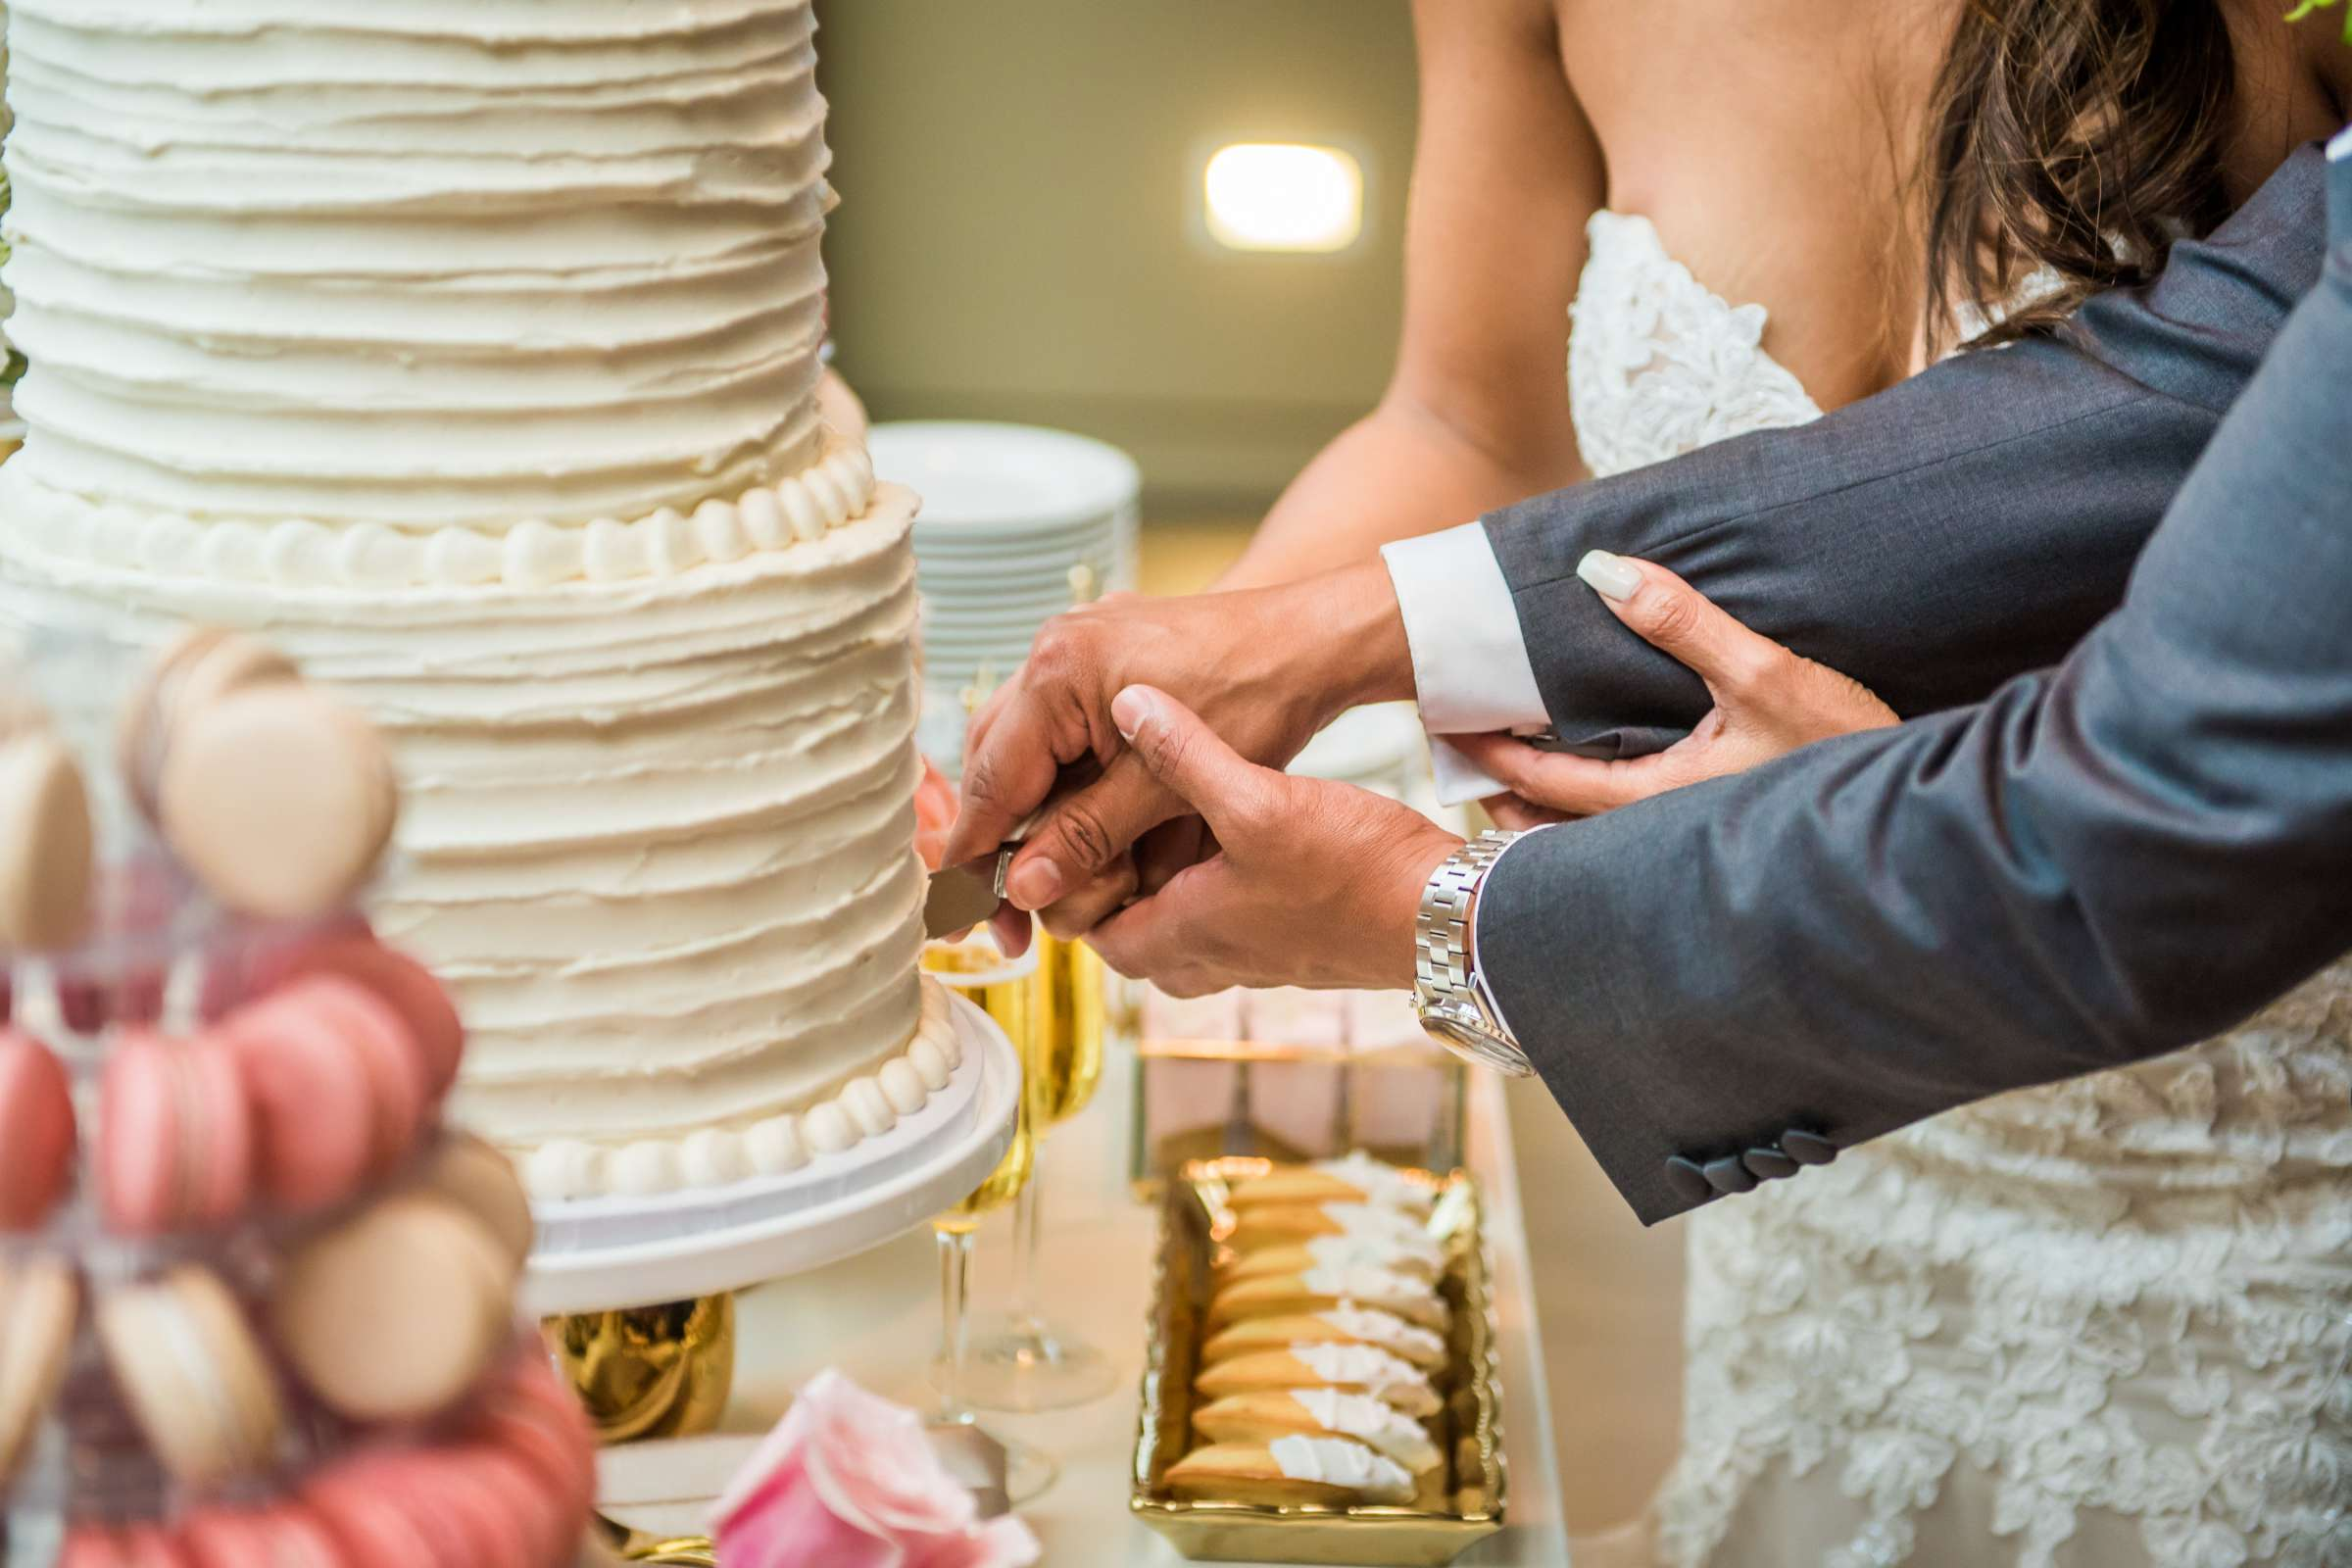 Scripps Seaside Forum Wedding coordinated by Lavish Weddings, Cindy and Justin Wedding Photo #381864 by True Photography